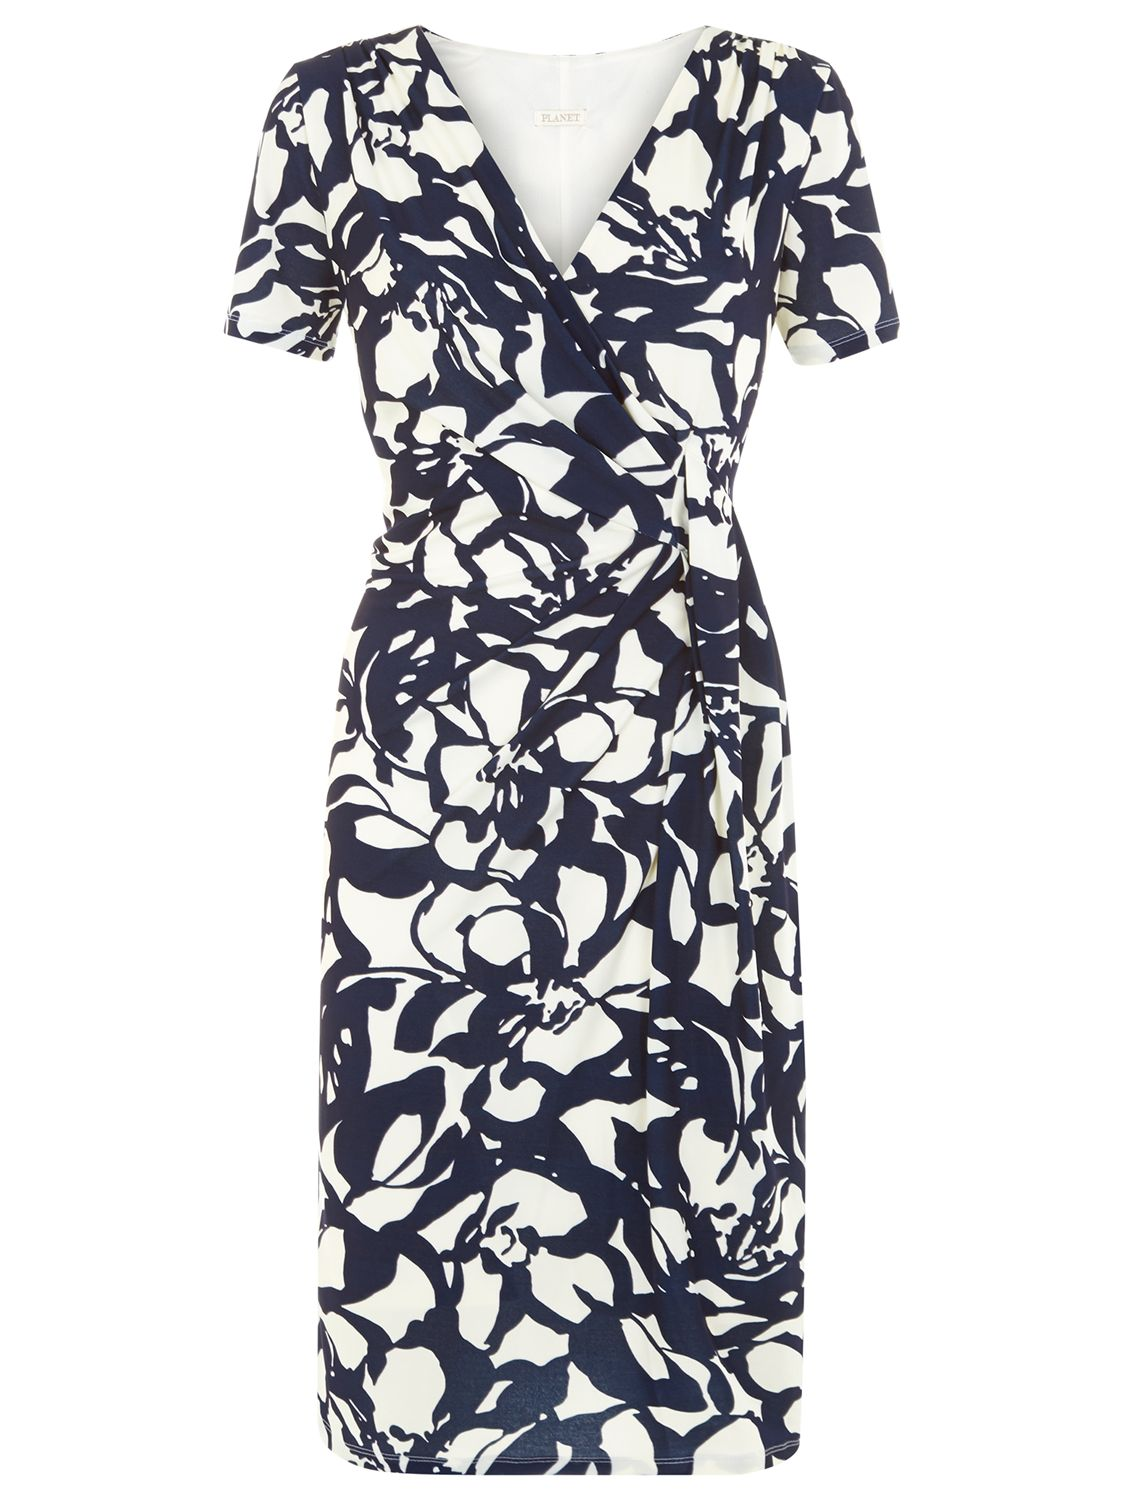 planet abstract print ity dress navy, planet, abstract, print, ity, dress, navy, 18|14|8|12|20|16|10, women, plus size, womens dresses, 1885584